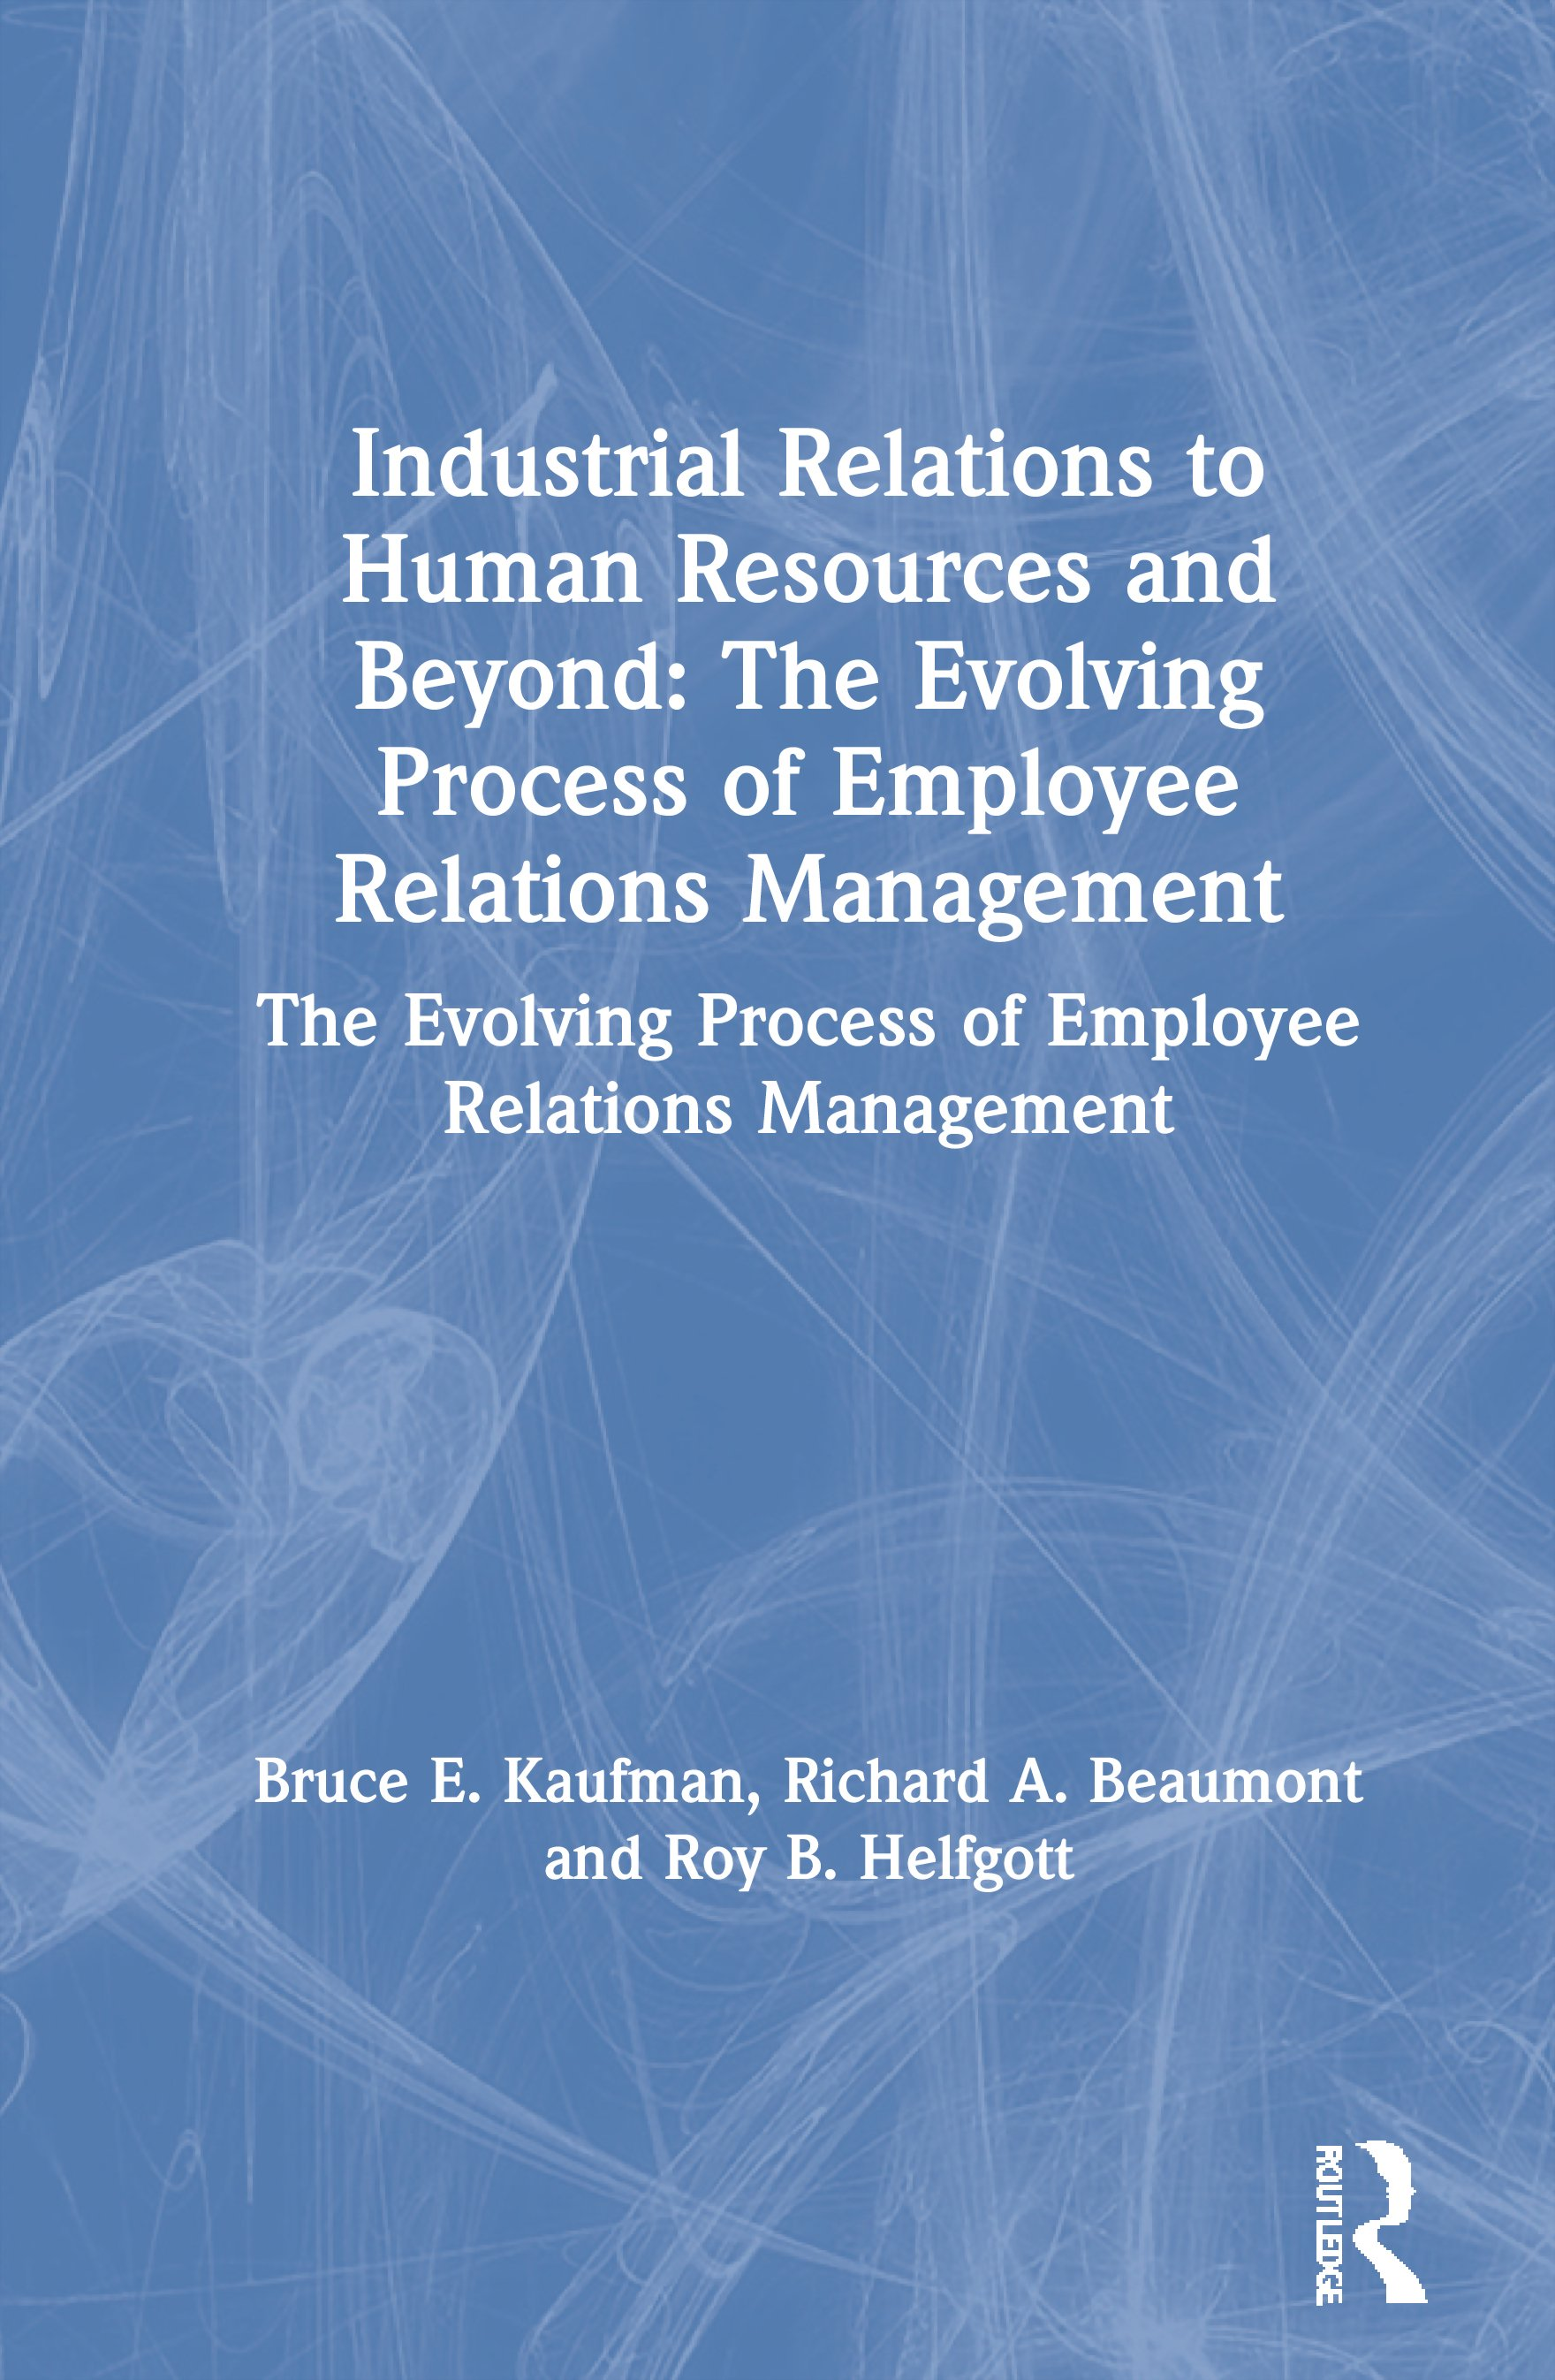 Industrial Relations to Human Resources and Beyond: The Evolving Process of Employee Relations Management: The Evolving Process of Employee Relations Management, 1st Edition (Hardback) book cover